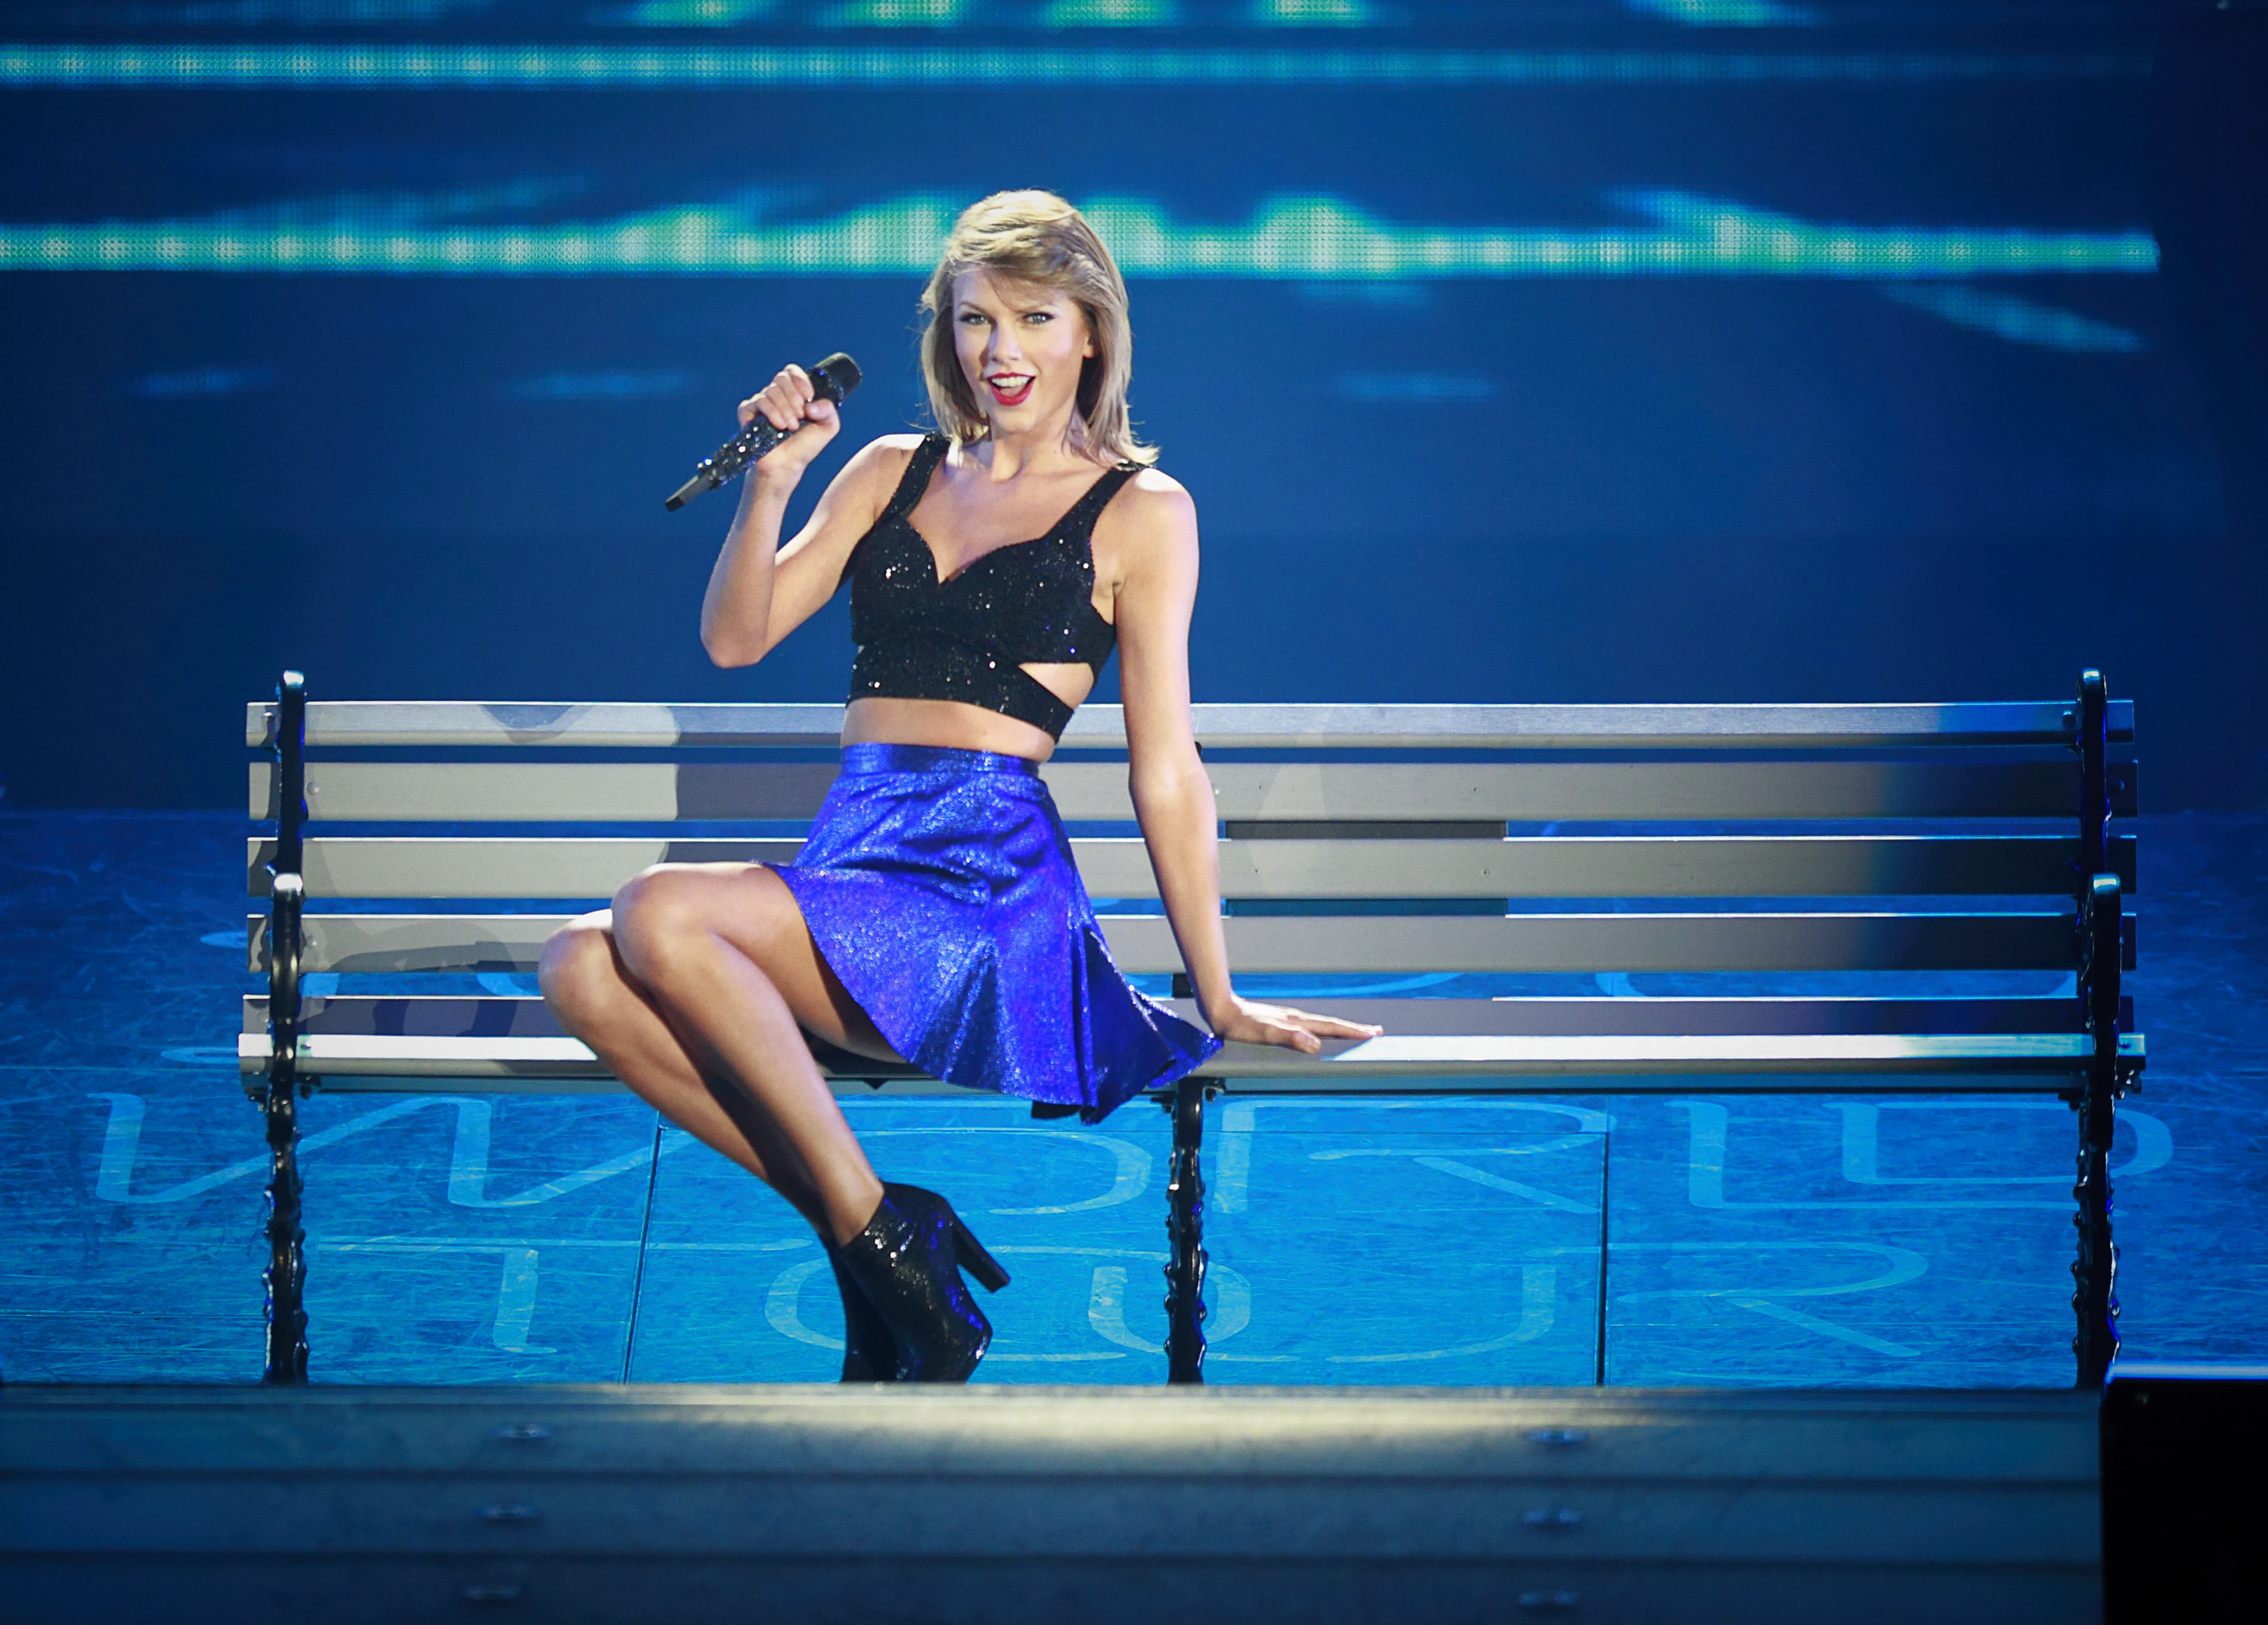 Taylor Swift performs during The 1989 World Tour Live at BC Place Stadium August 1, 2015 in Vancouver, British Columbia, Canada.